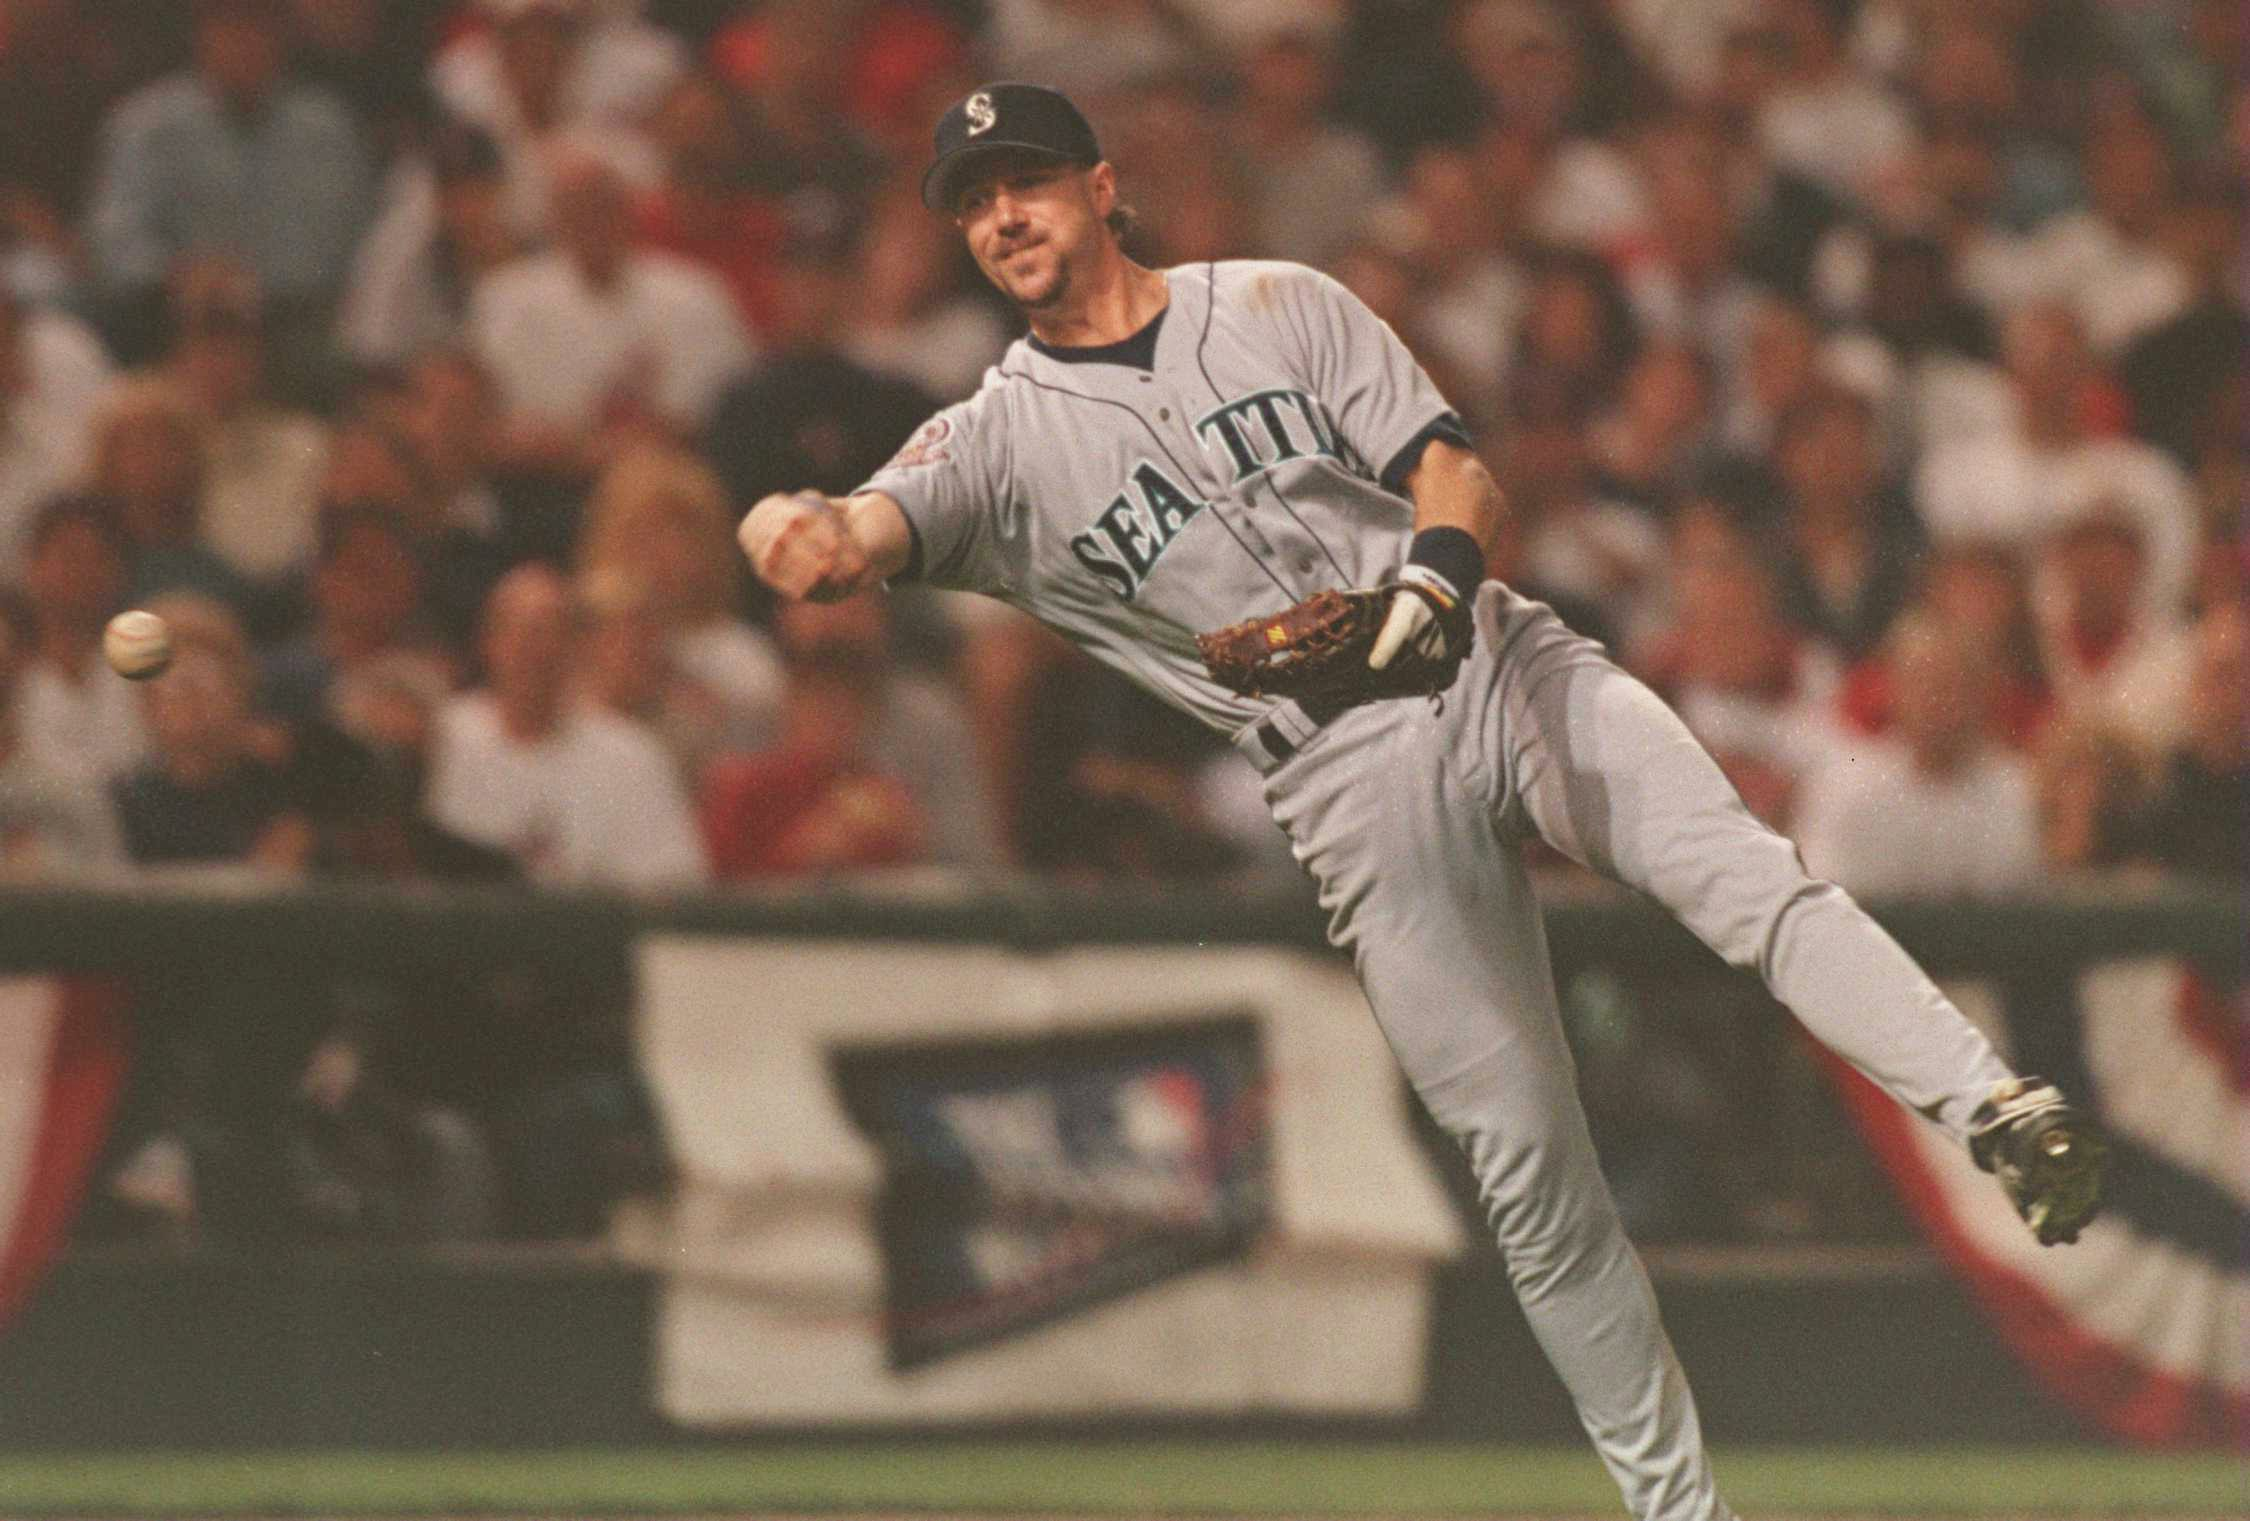 13 OCT 1995:  SEATTLE THIRD BASEMAN MIKE BLOWERS IN ACTION DURING THE MARINERS GAME VERSUS THE CLEVELAND INDIANS IN GAME THREE OF THE AMERICAN LEAGUE CHAMPIONSHIP SERIES AT JACOBS FIELD IN CLEVELAND, OHIO.  THE MARINERS BEAT THE INDIANS 5-2 TO TAKE A 2-1